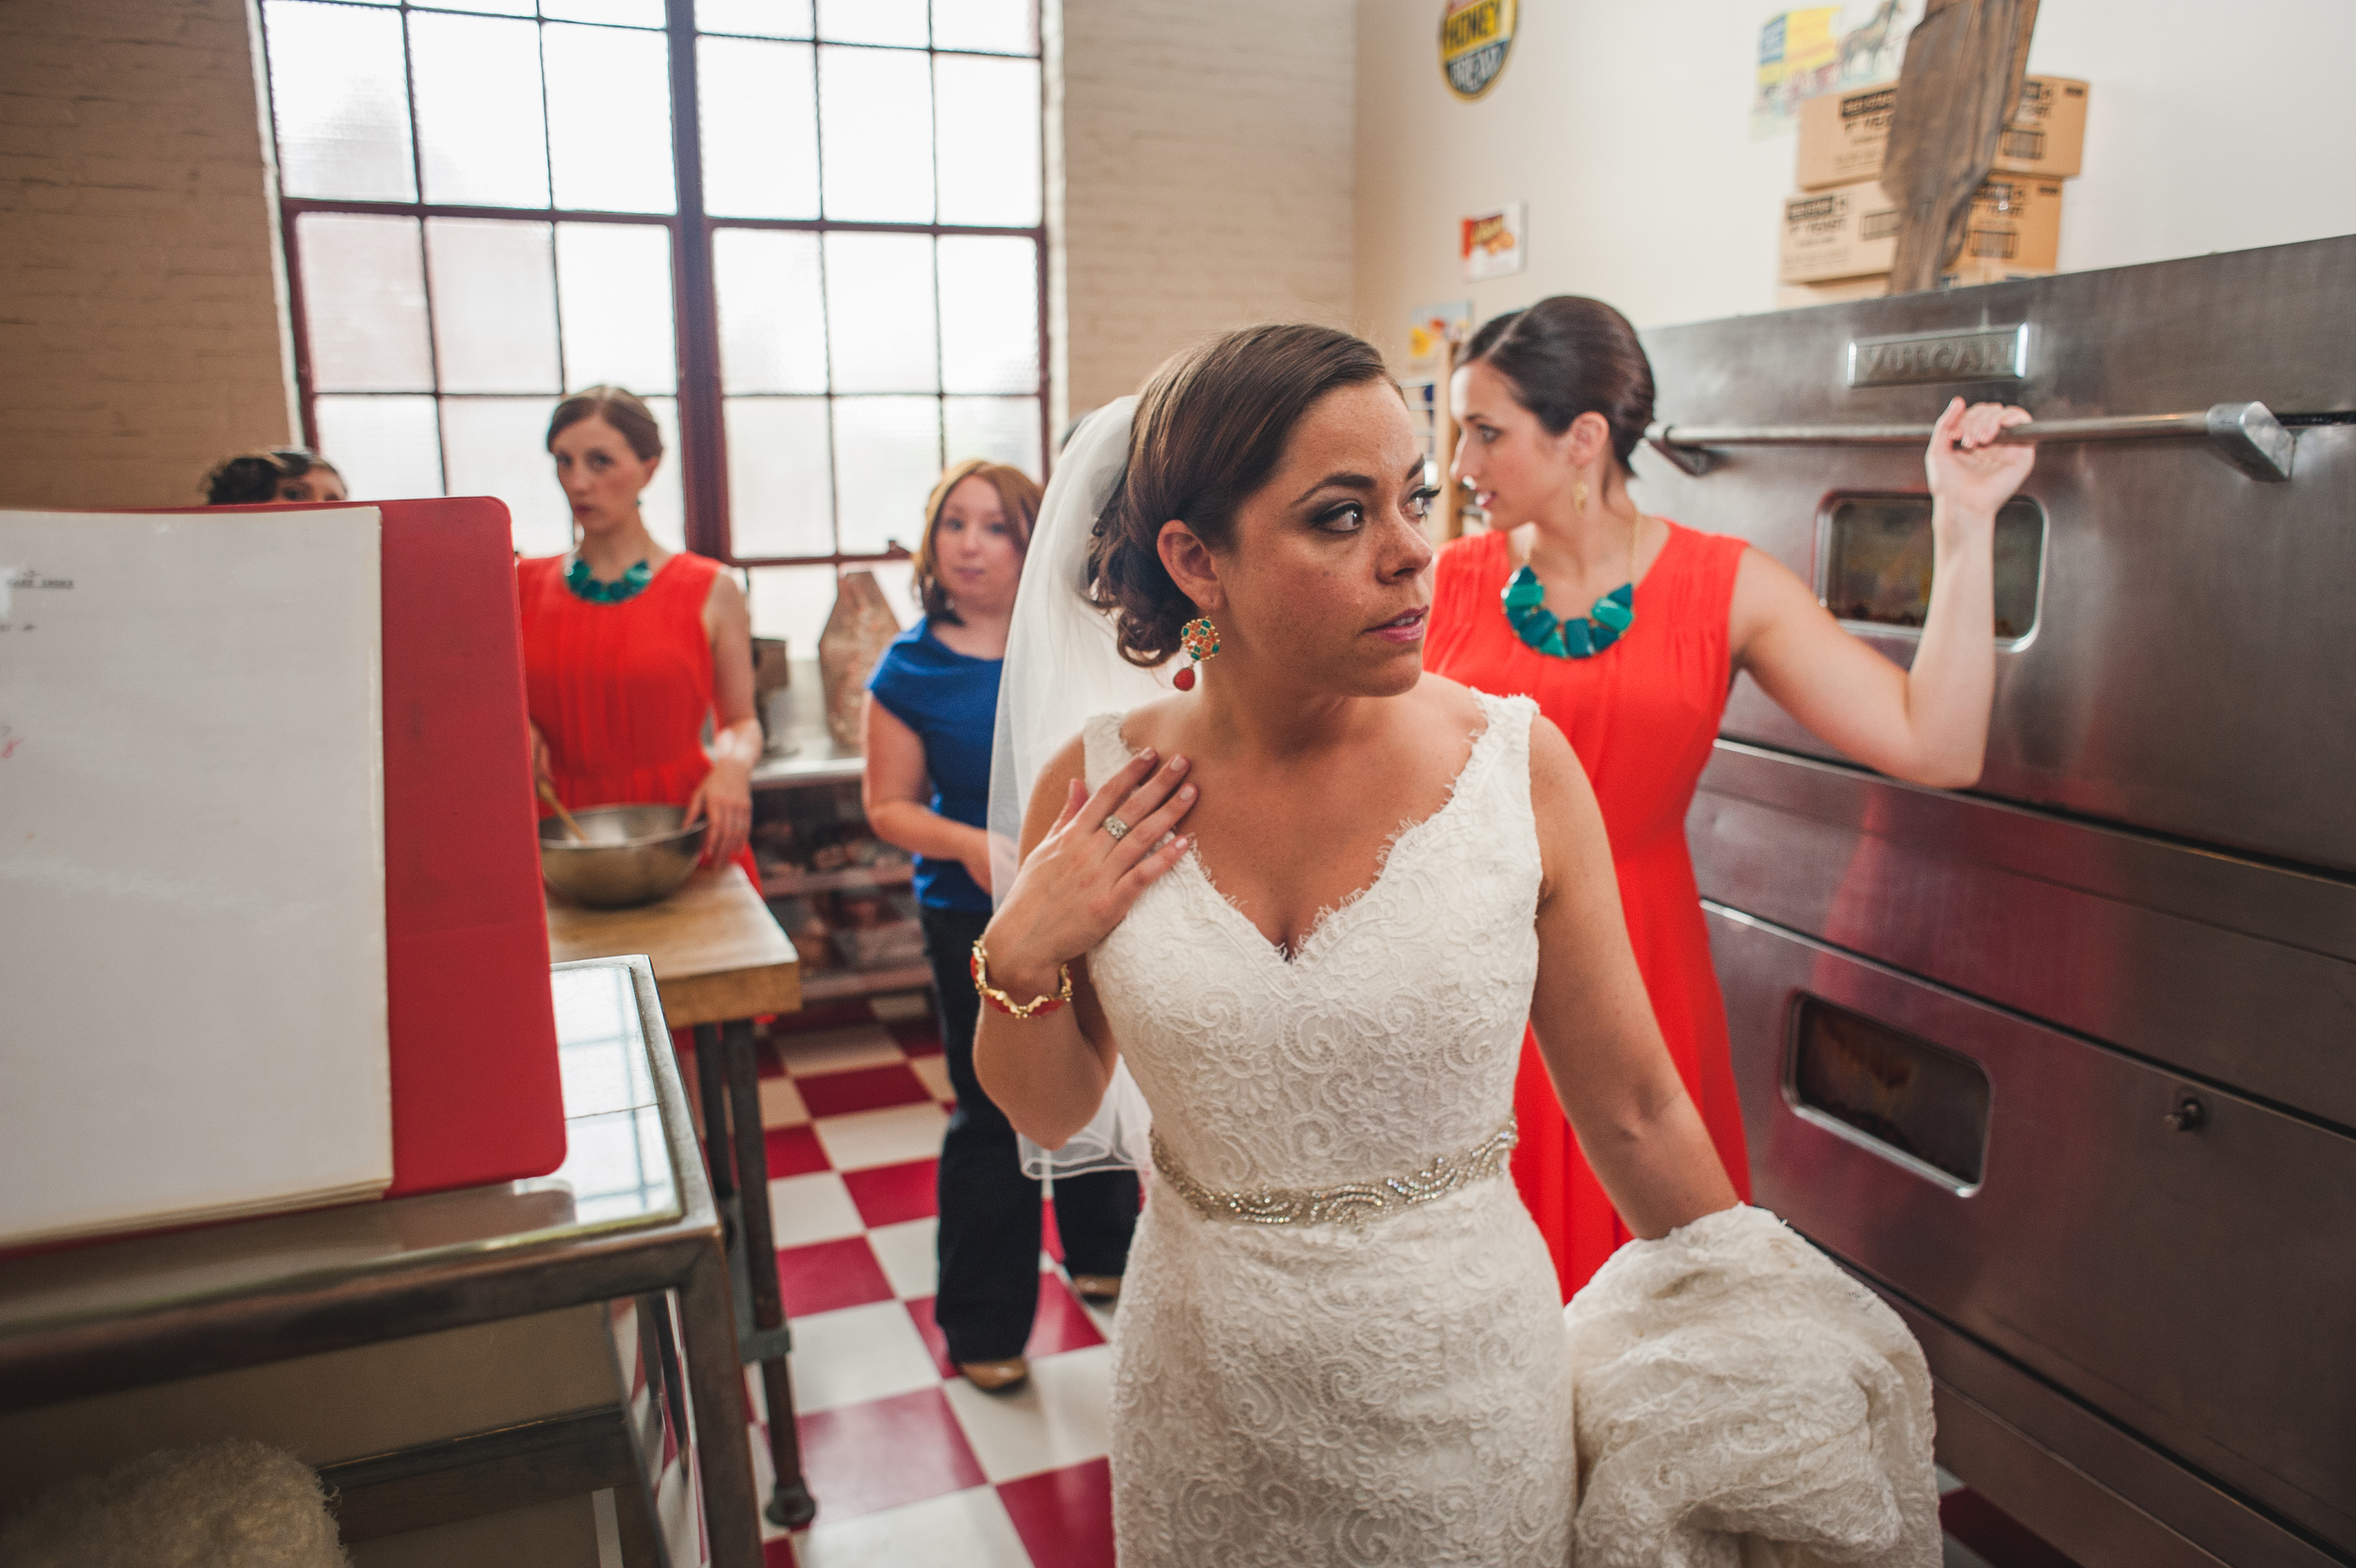 Baltimore Museum of Industry Wedding by Mantas Kubilinskas-18.jpg